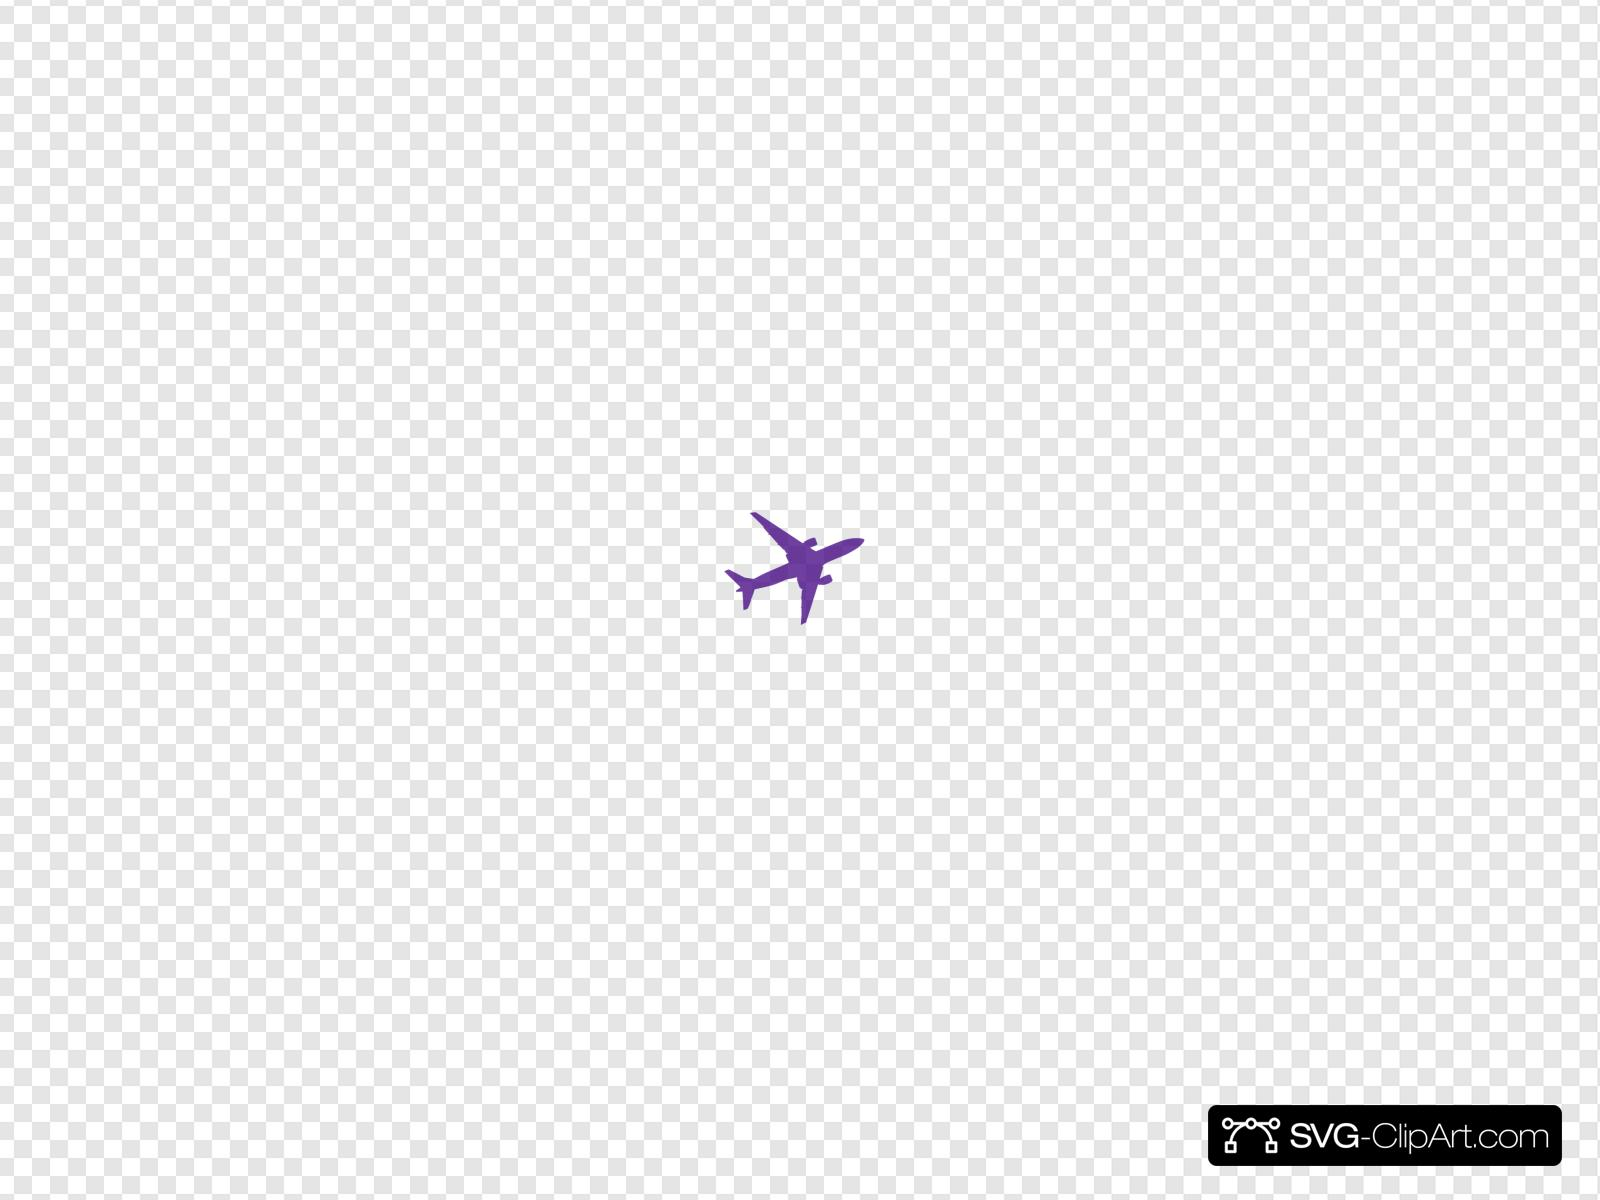 Small Purple Airplane Clip art, Icon and SVG.